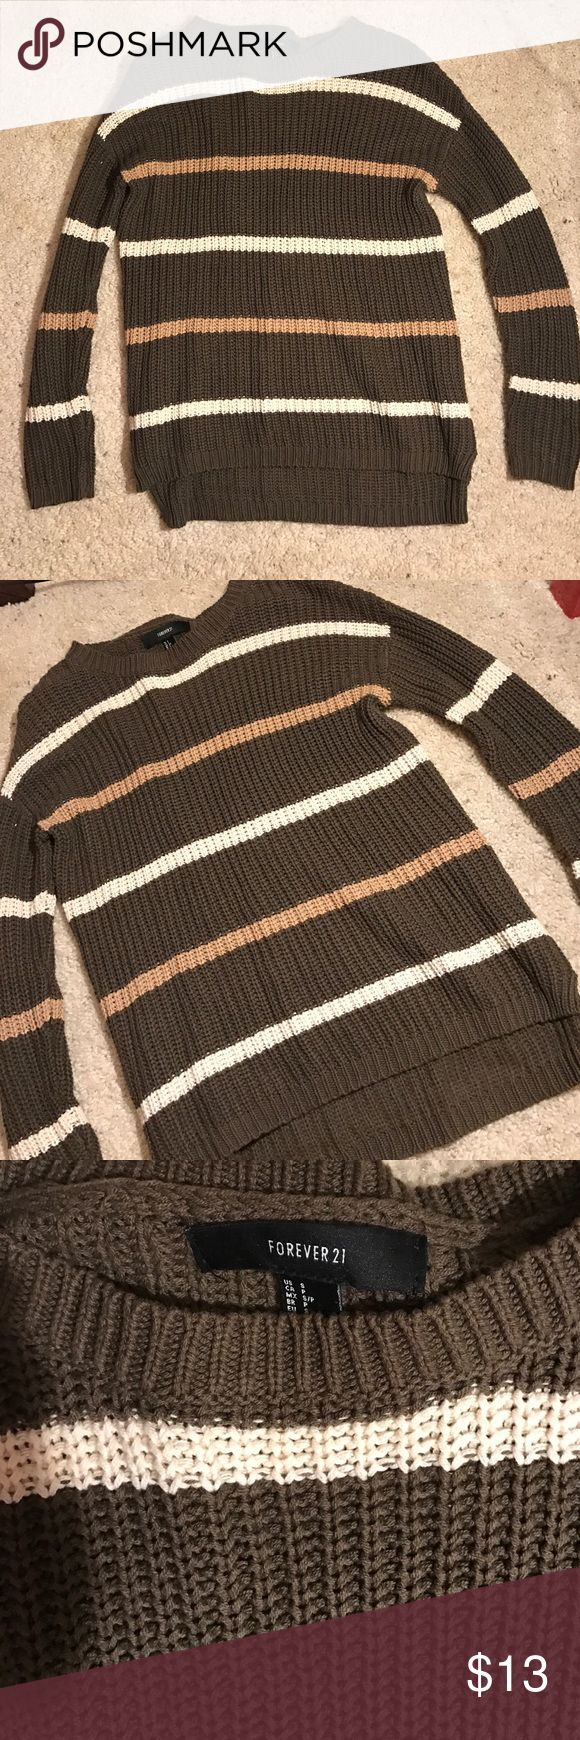 Forever 21 sweater Olive green with tan and off white stripes bought at forever 21. Forever 21 Sweaters Crew & Scoop Necks